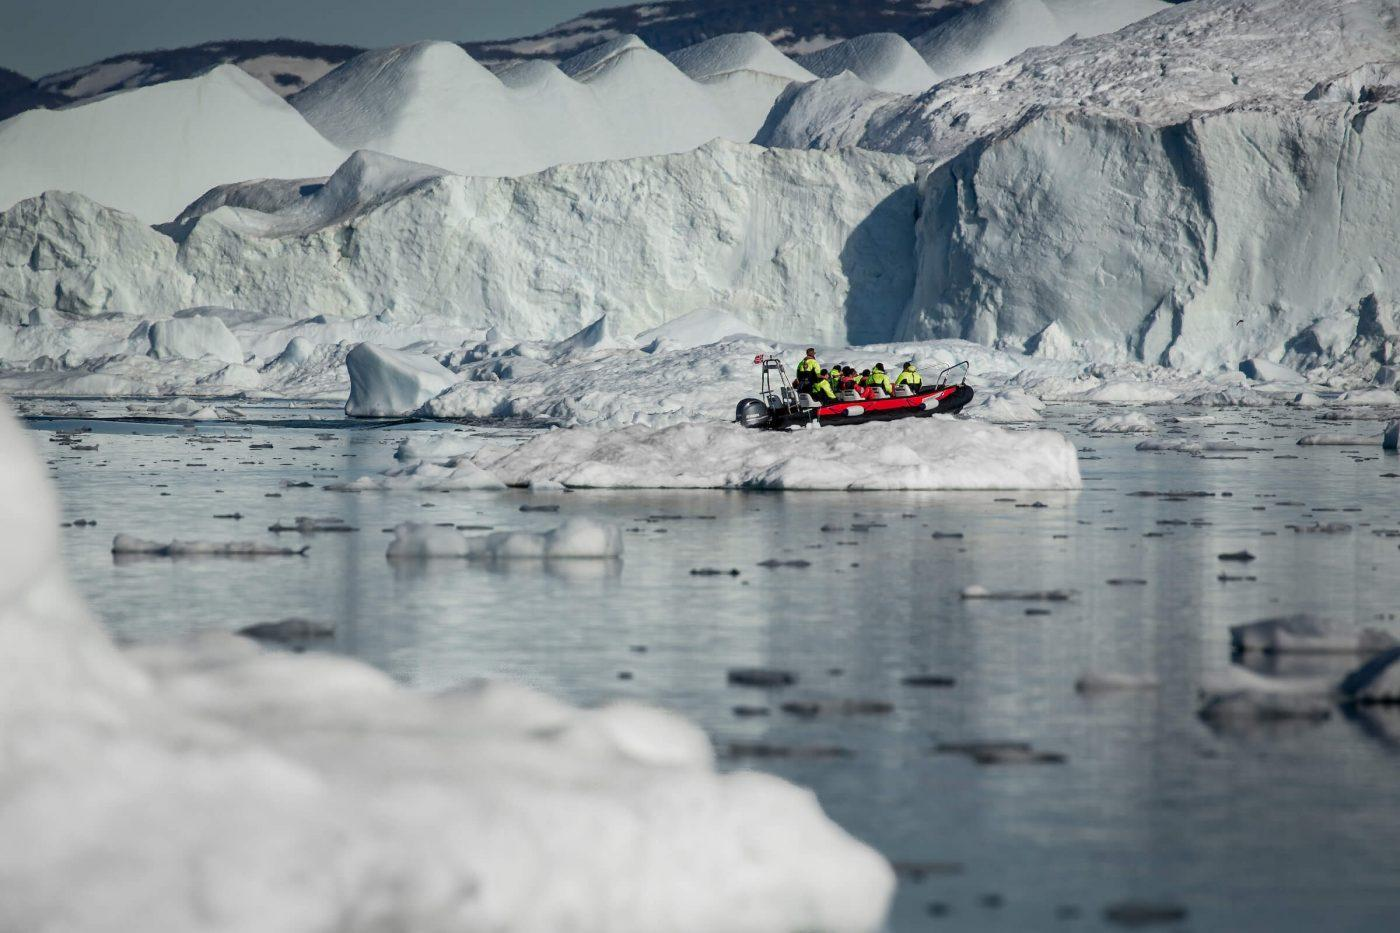 Ice cruising with MS Fram in the Ilulissat Ice Fjord in Greenland. By Mads Pihl